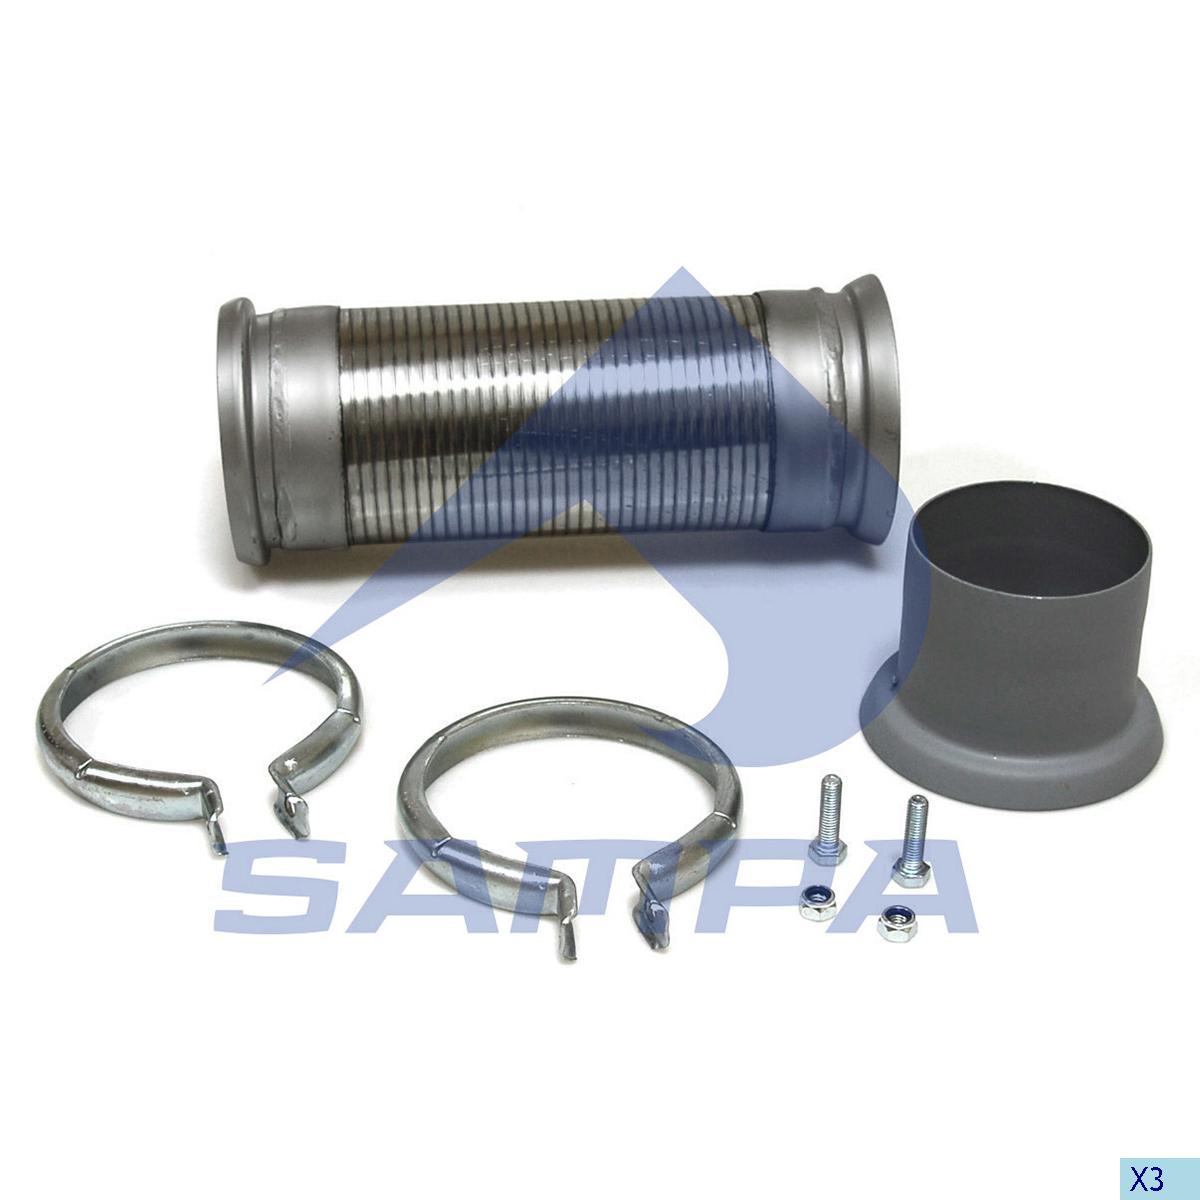 Repair Kit, Exhaust, Mercedes, Engine